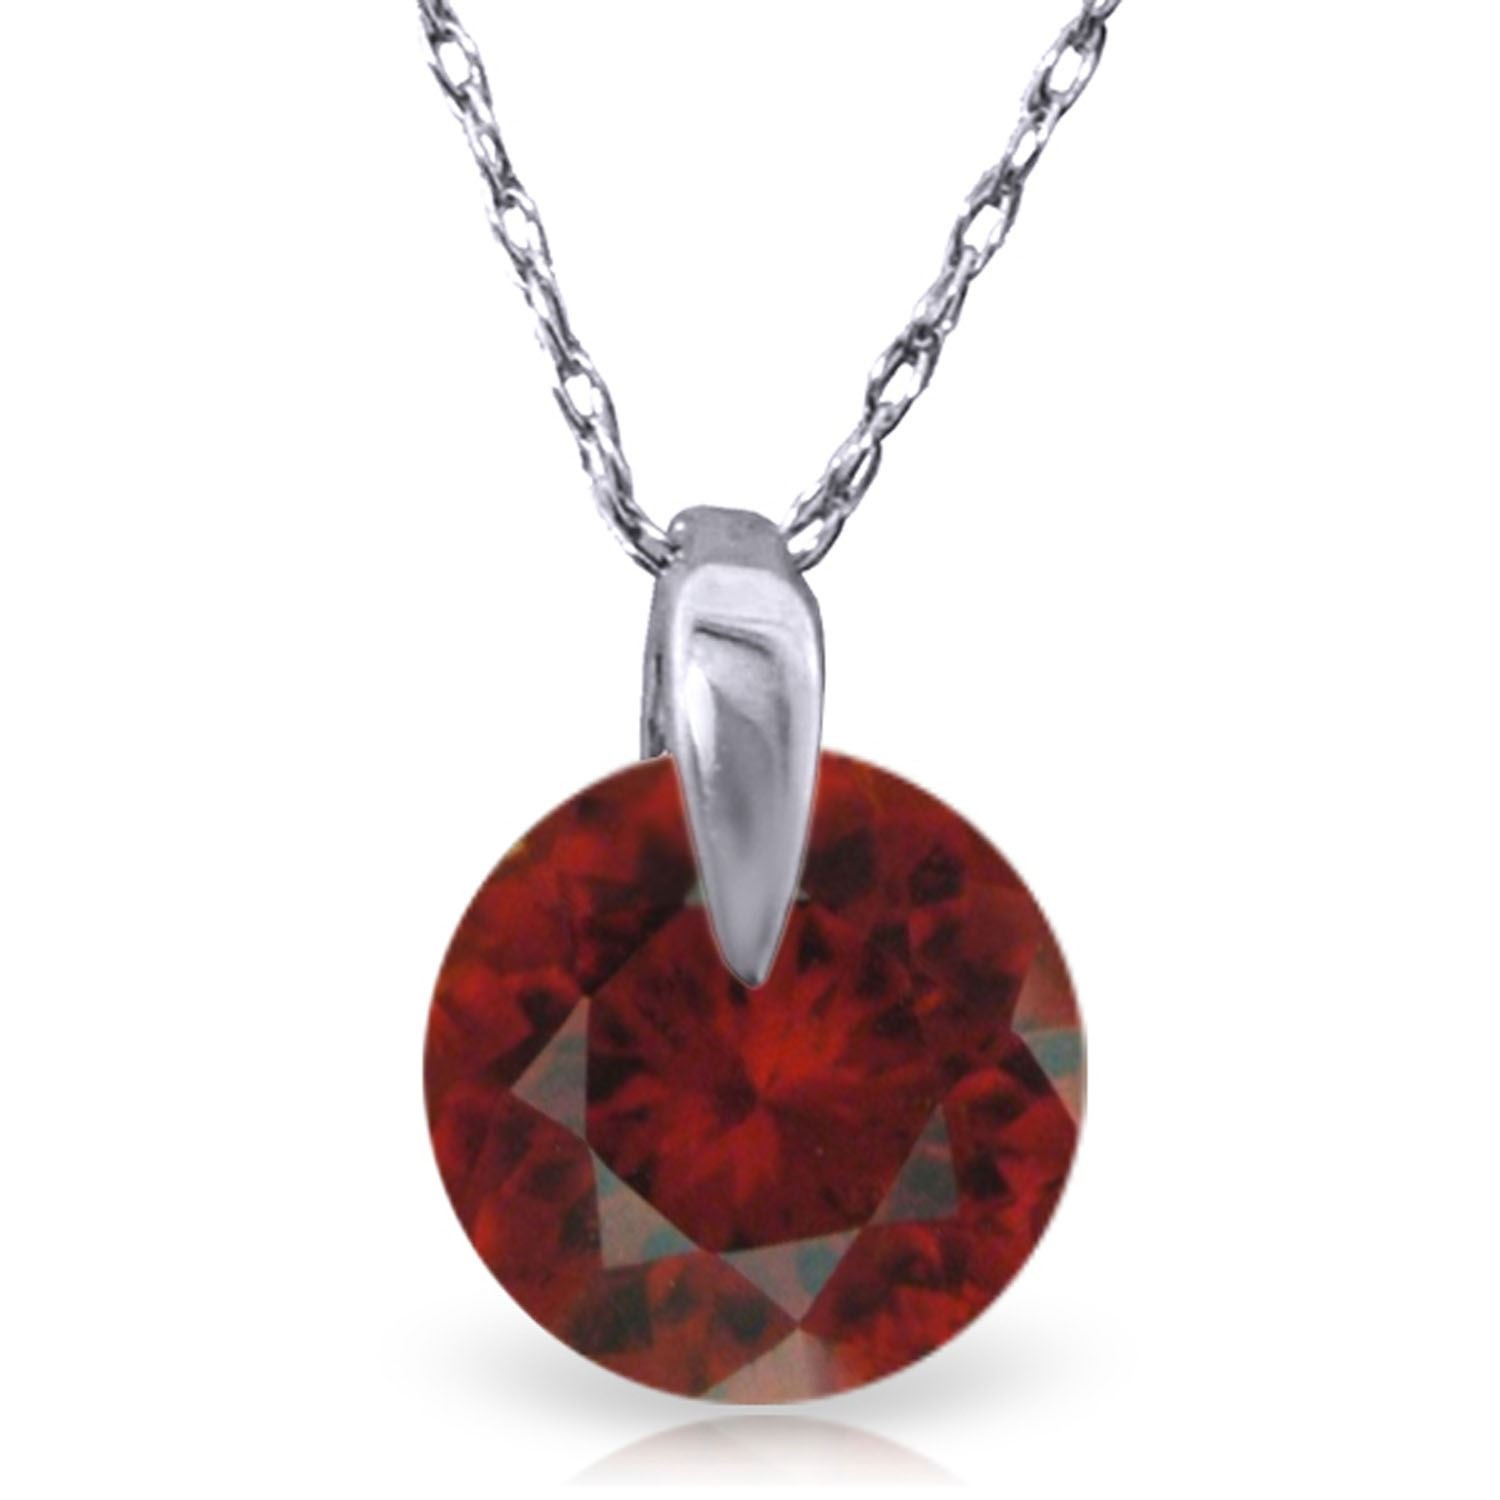 ALARRI 1 Carat 14K Solid White Gold Don't Rush Love Garnet Necklace with 20 Inch Chain Length